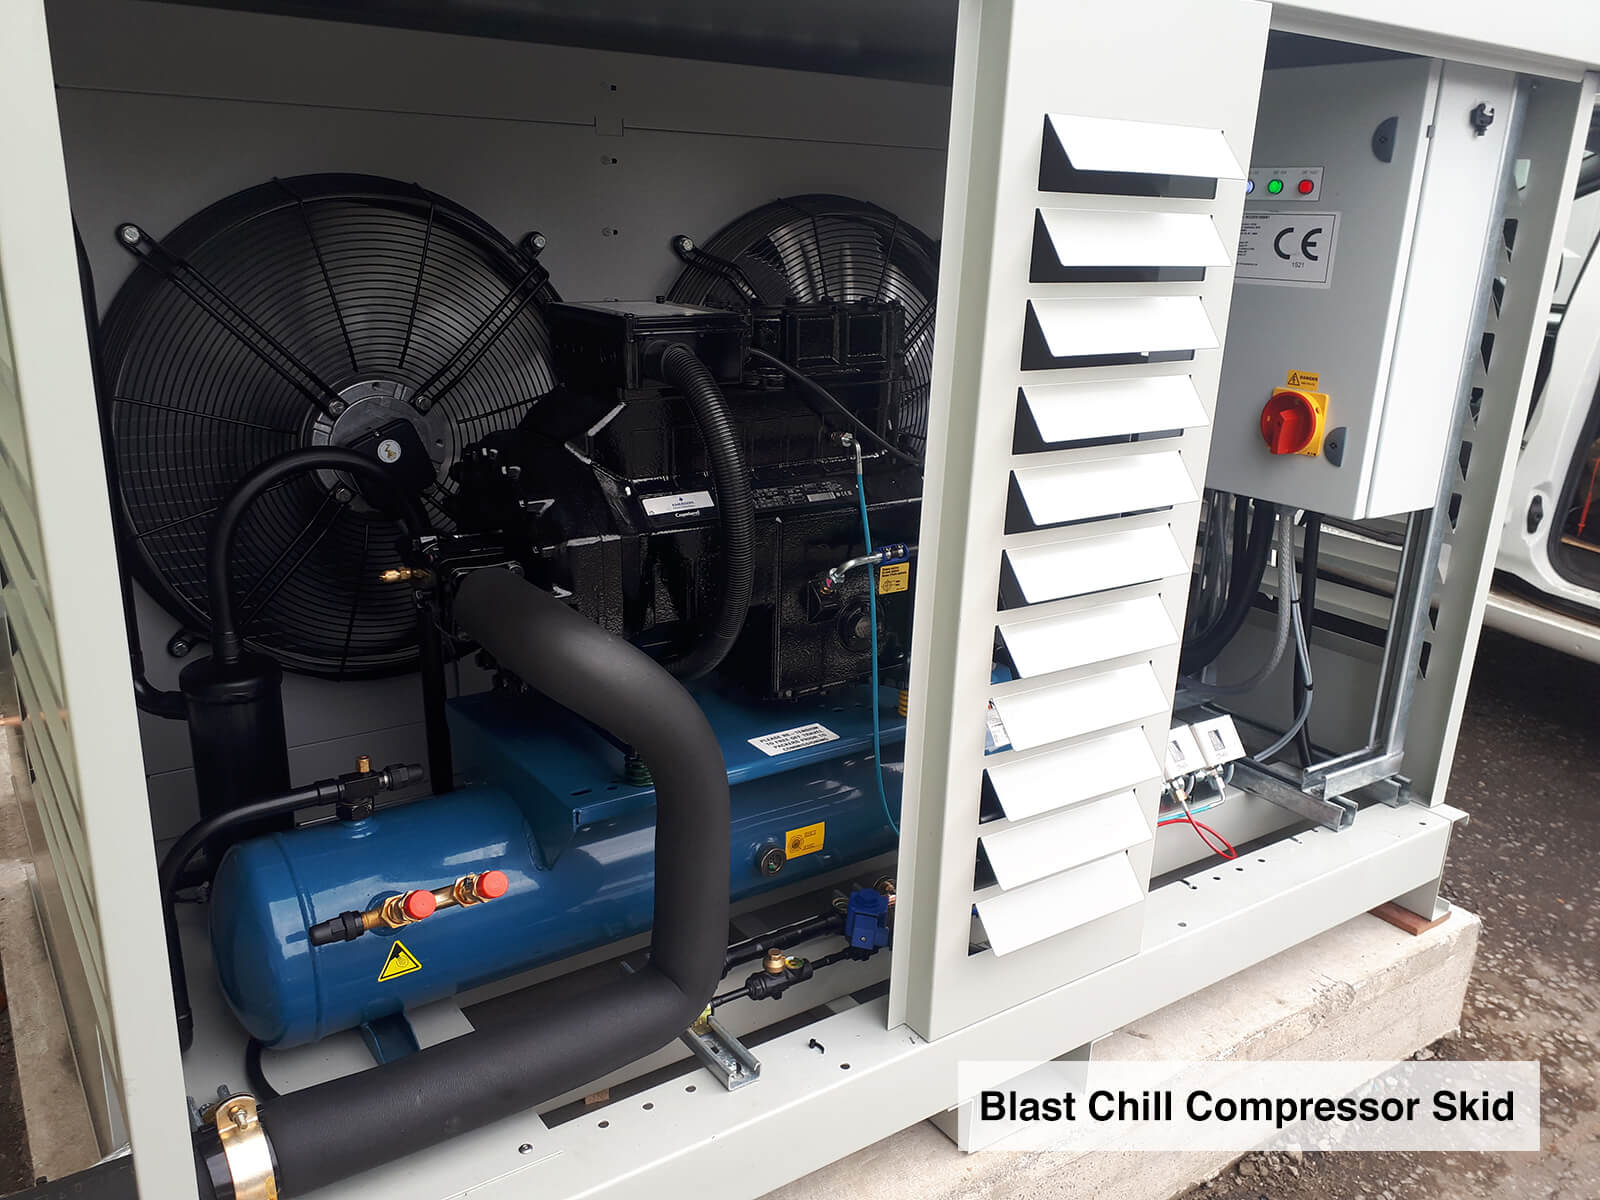 Blast-Chill-Compressor-Skid